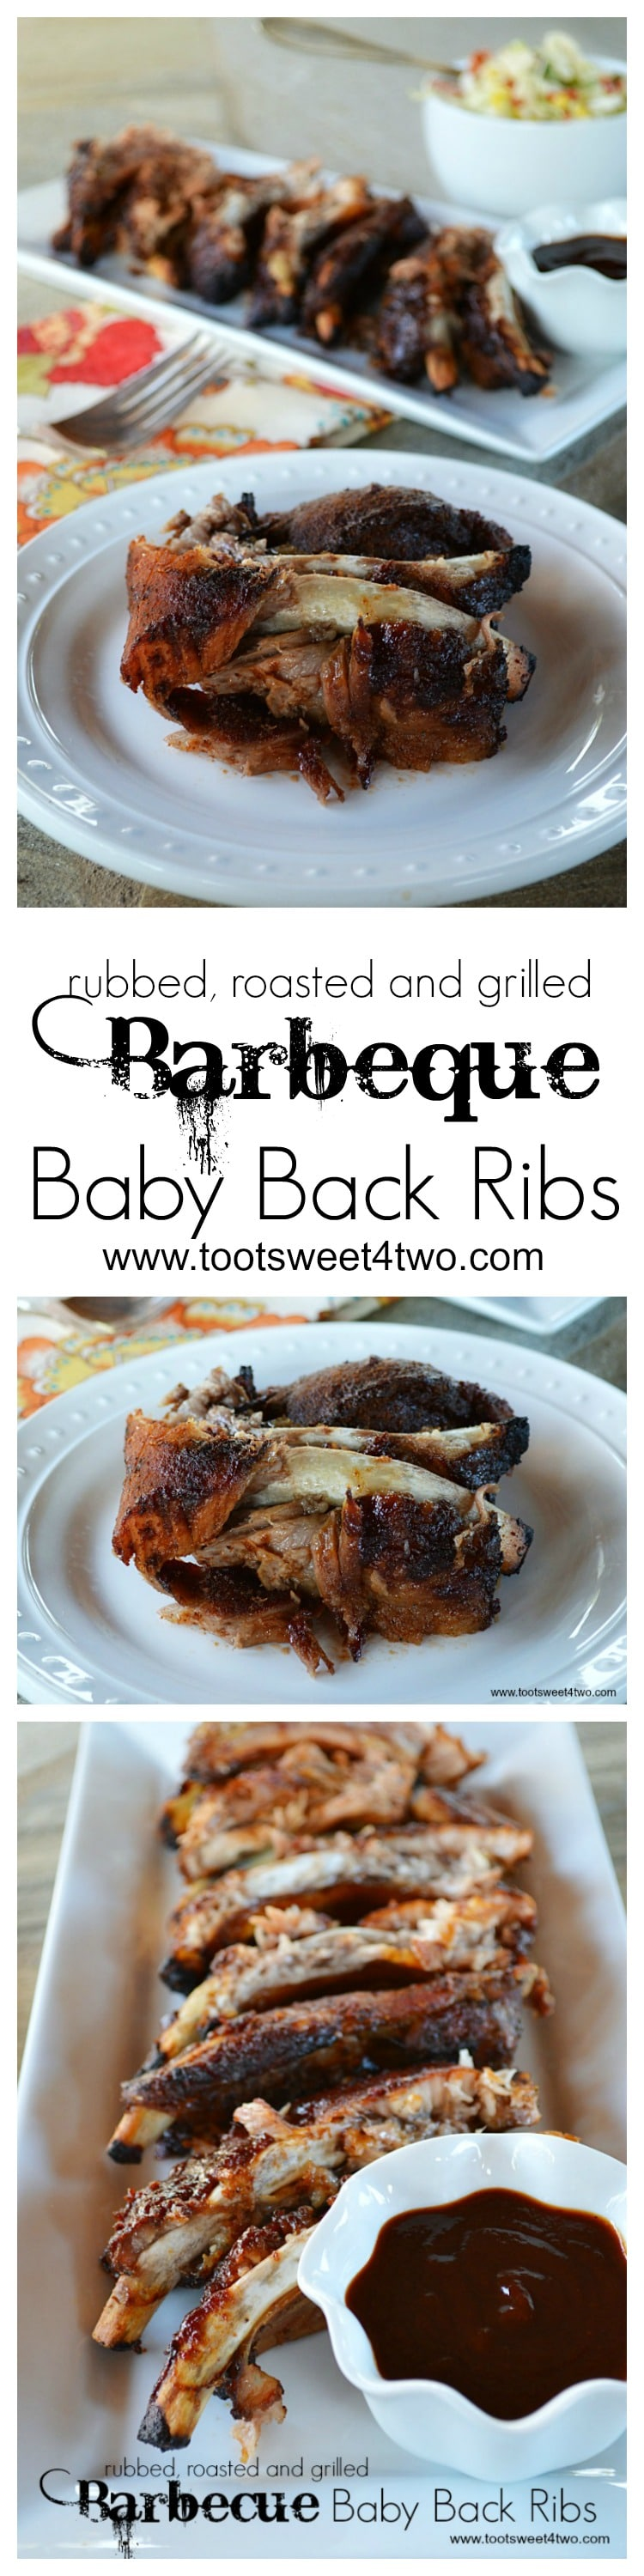 The trifecta of cooking the best baby back ribs, with this recipe you rub, roast, grill on the barbecue, pork ribs to perfection! Fall-off-the-bone deliciousness, this BBQ ribs recipe delivers all the sticky goodness of ribs on the grill, but less time standing over the hot grill and babysitting them. Roast the ribs in the oven first and finish the ribs on the grill. | www.tootsweet4two.com